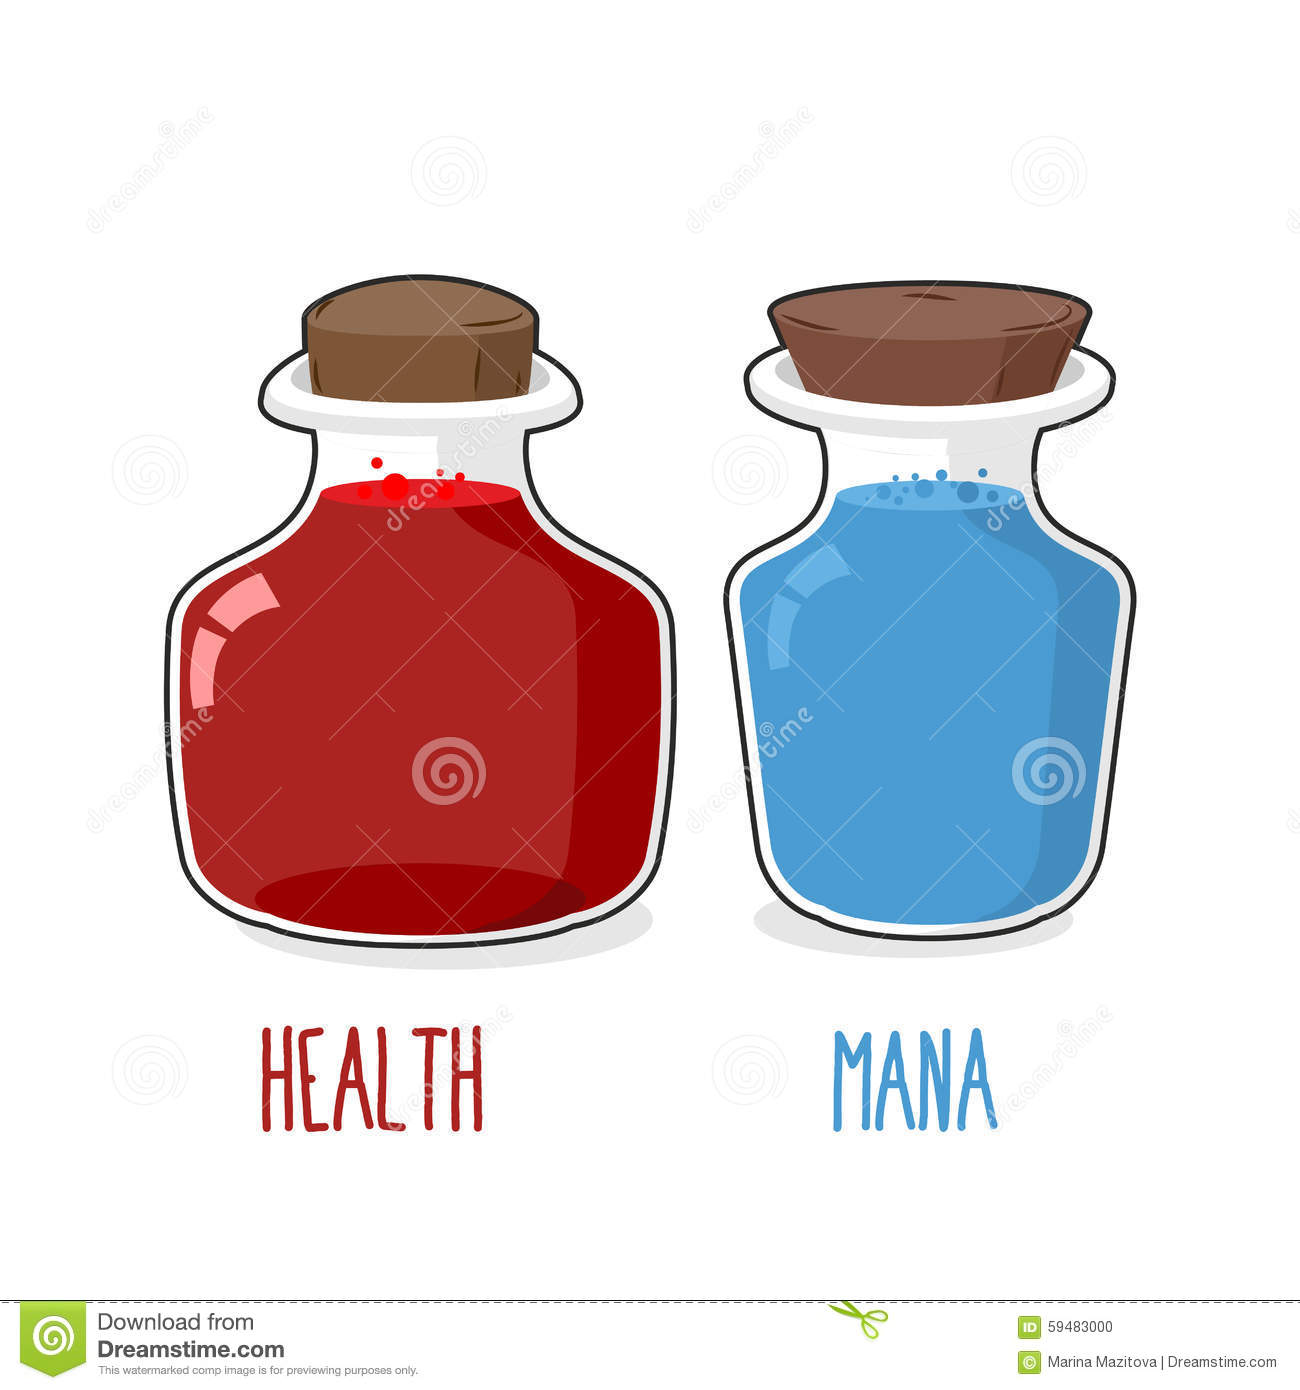 Grim Billy Mandy as well Blog 2 besides Ready Jet Go Games Apps Toys together with Stock Illustration Health Mana Magic Bottle Blue Red Potion Set G Glass Jars Games Vector Illustration Cartoon Style Image59483000 as well Zombies On Fire. on old laboratory cartoon